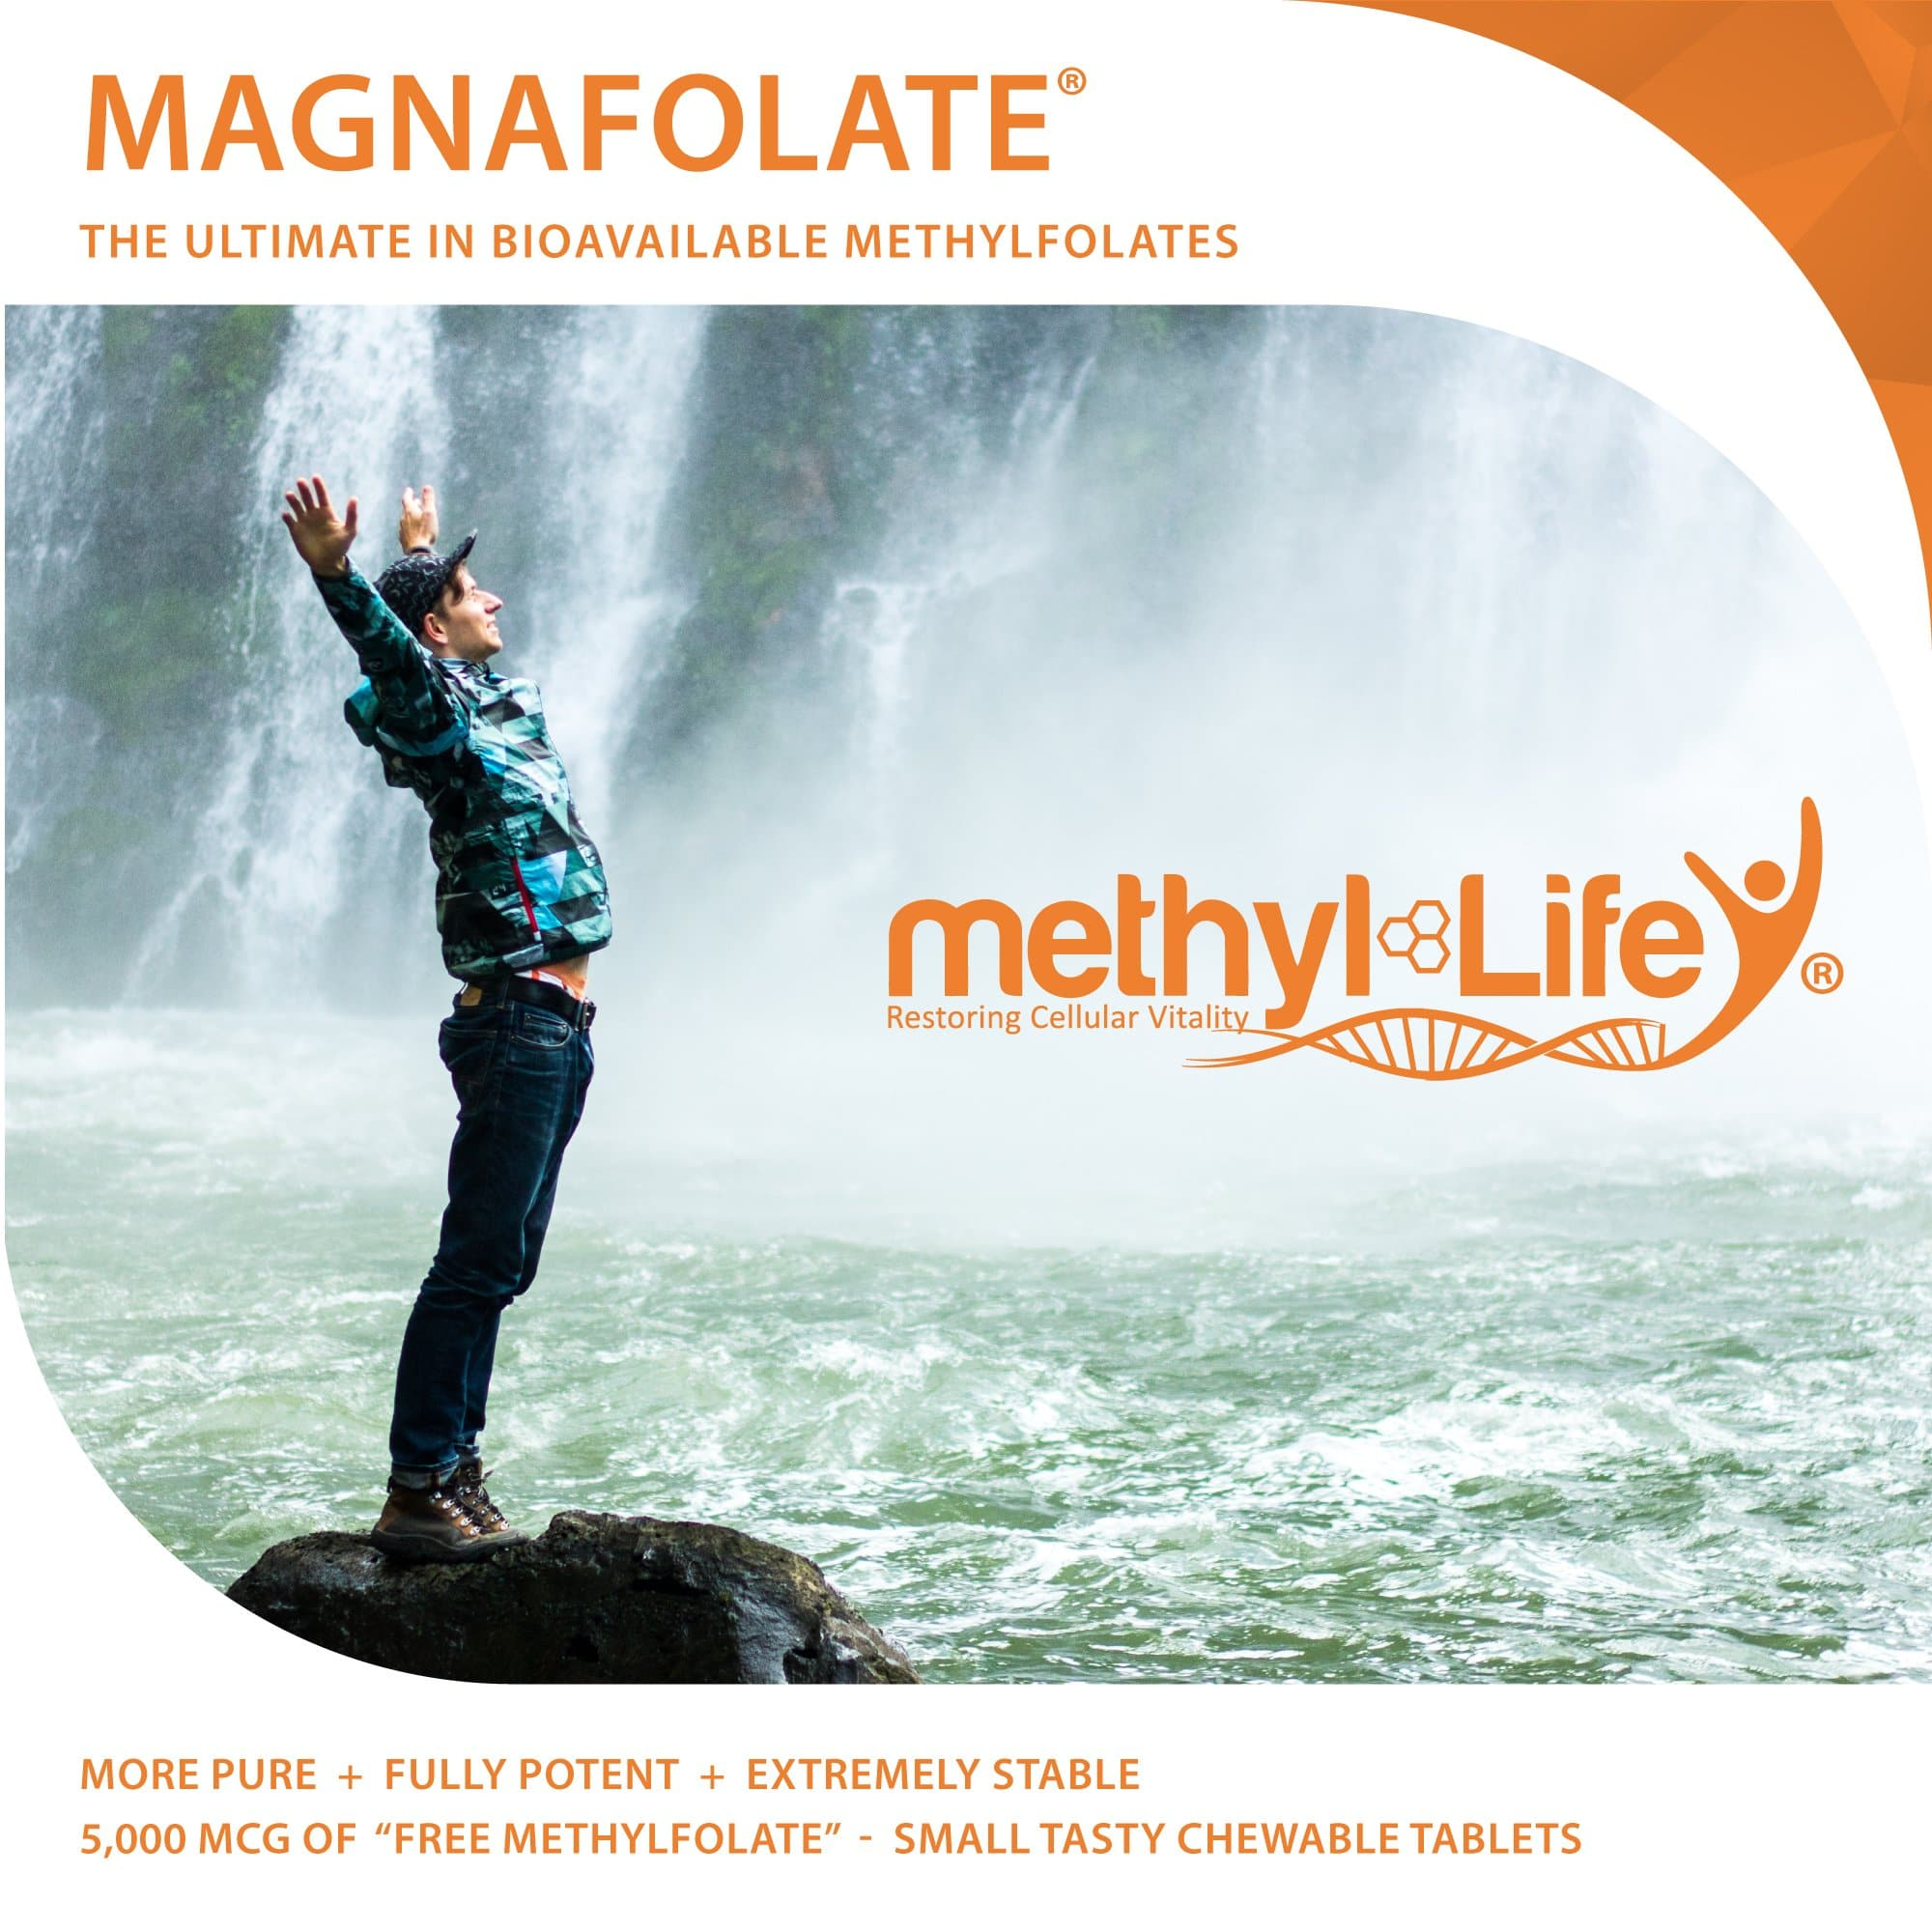 Methylfolate 5 mg - Purest L-Methylfolate - 3 month supply - Chewables